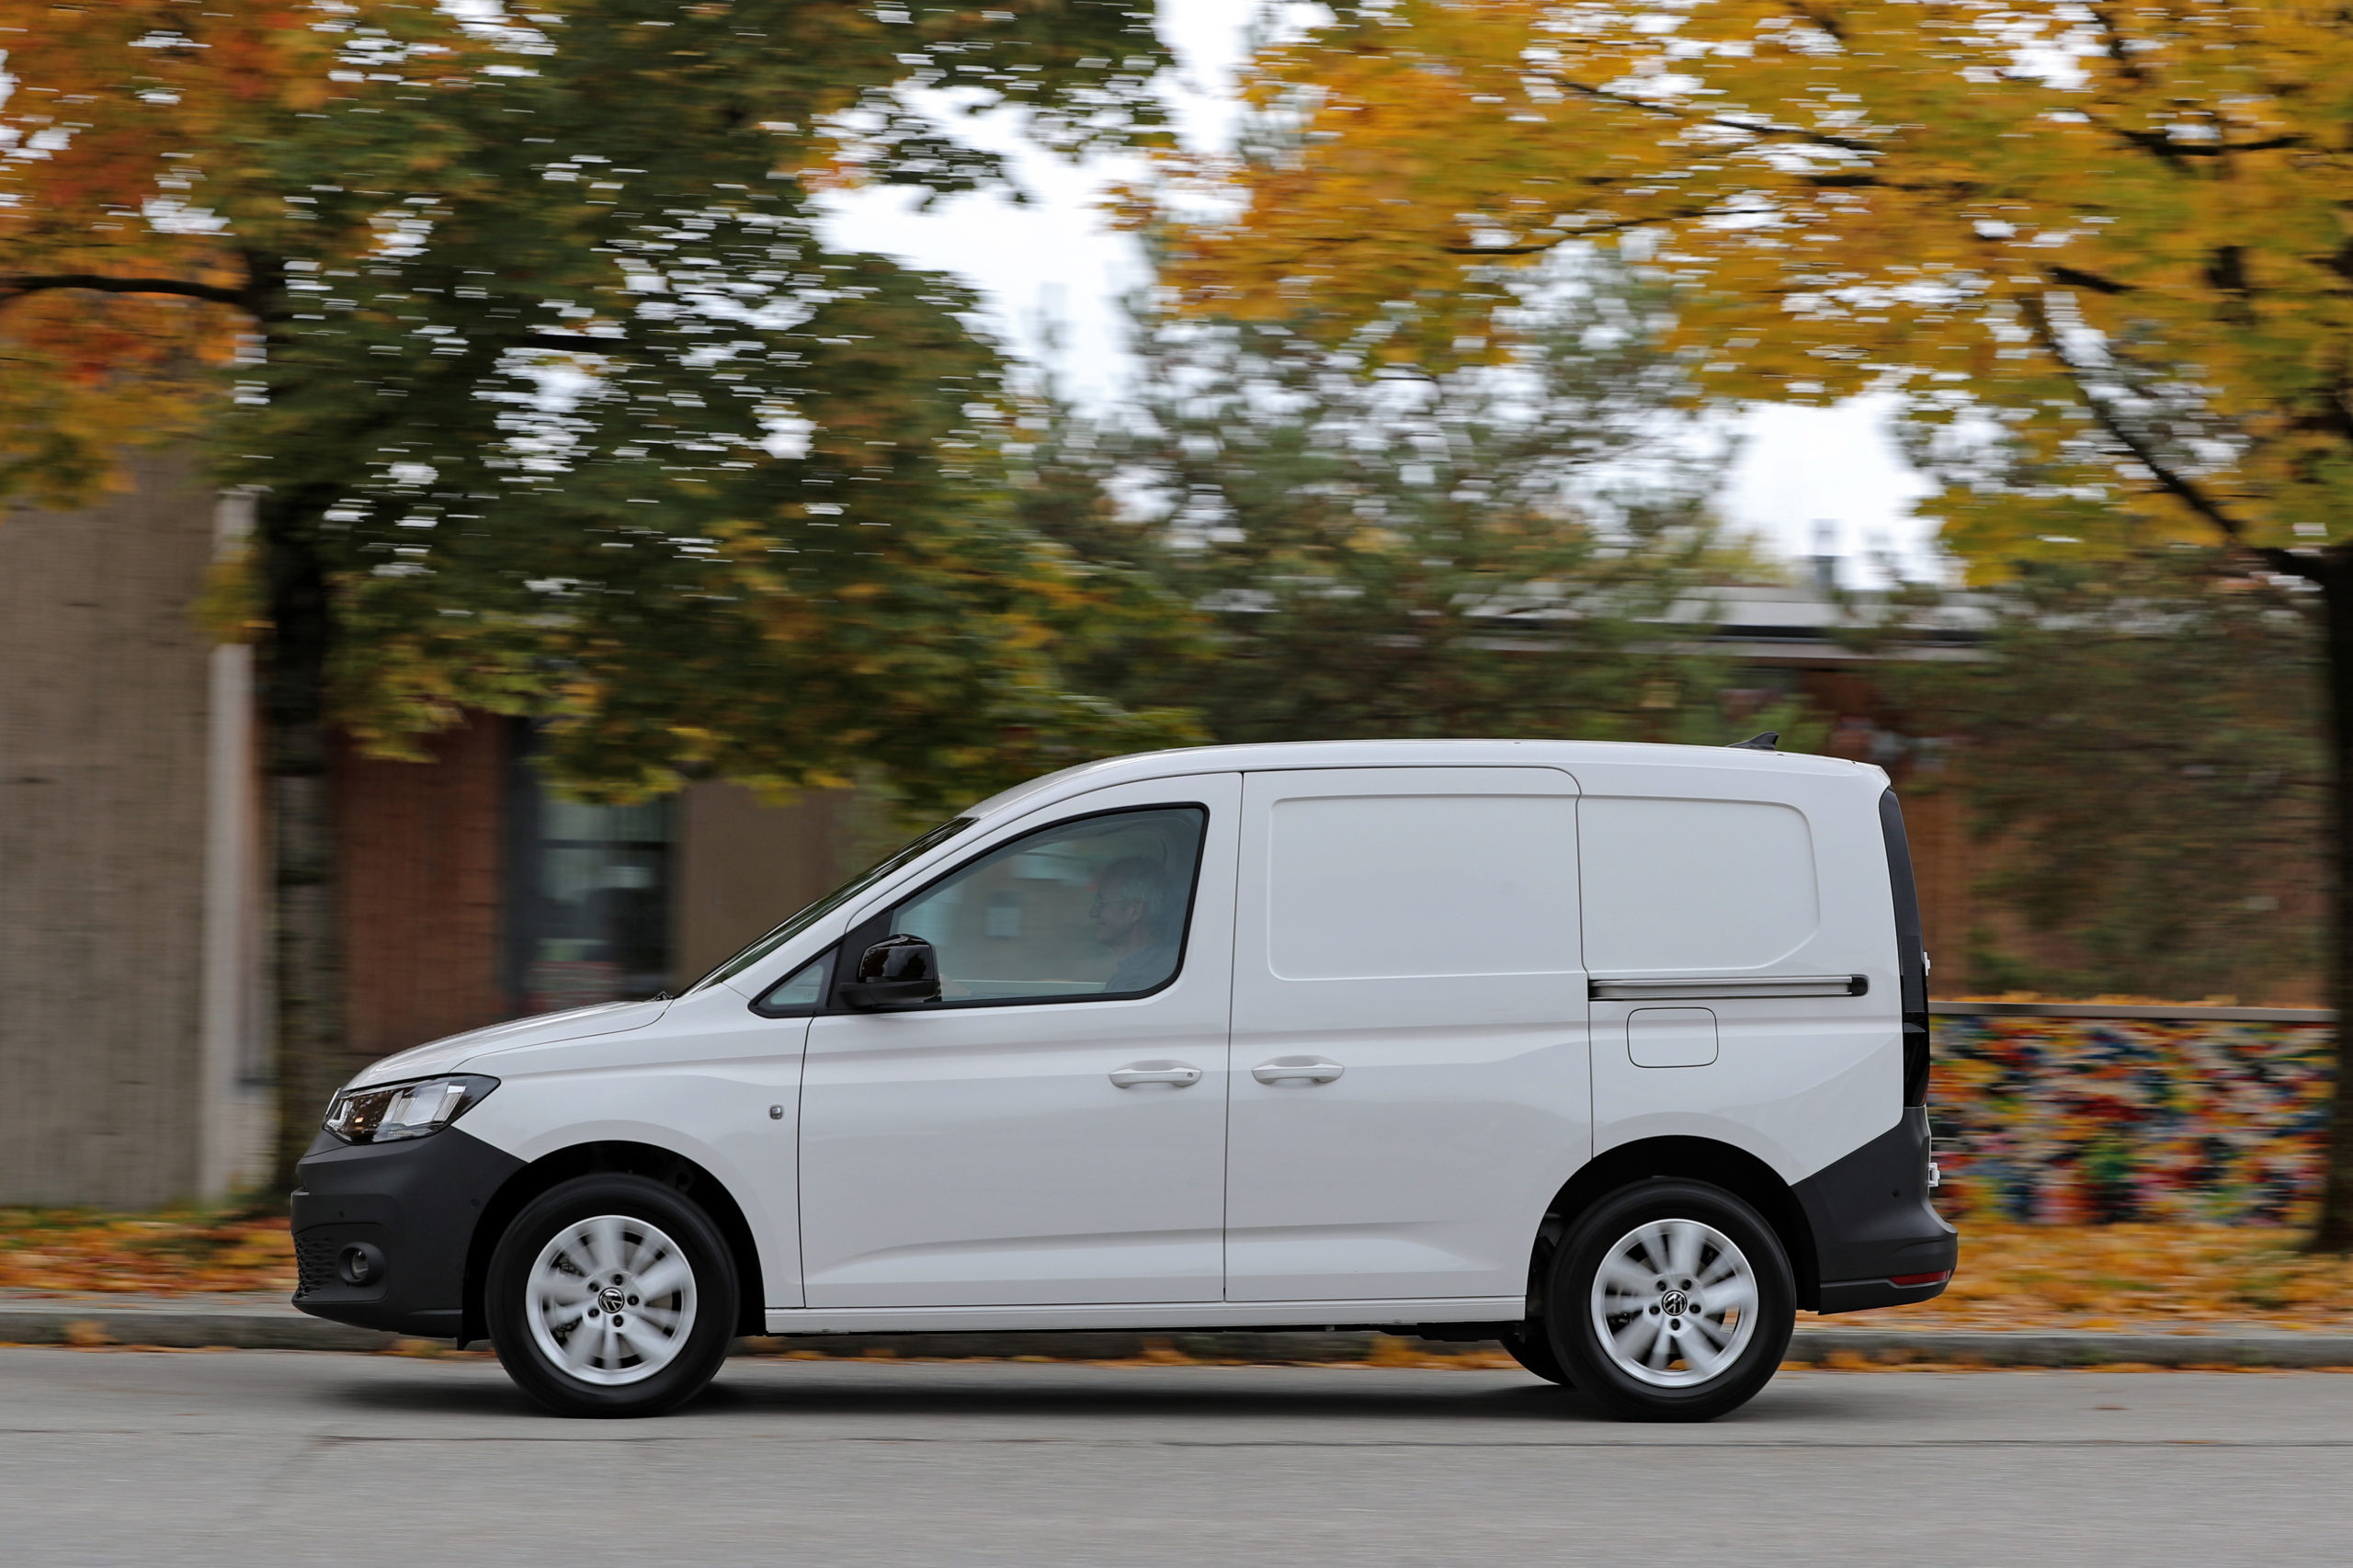 Volkswagen Caddy for lease